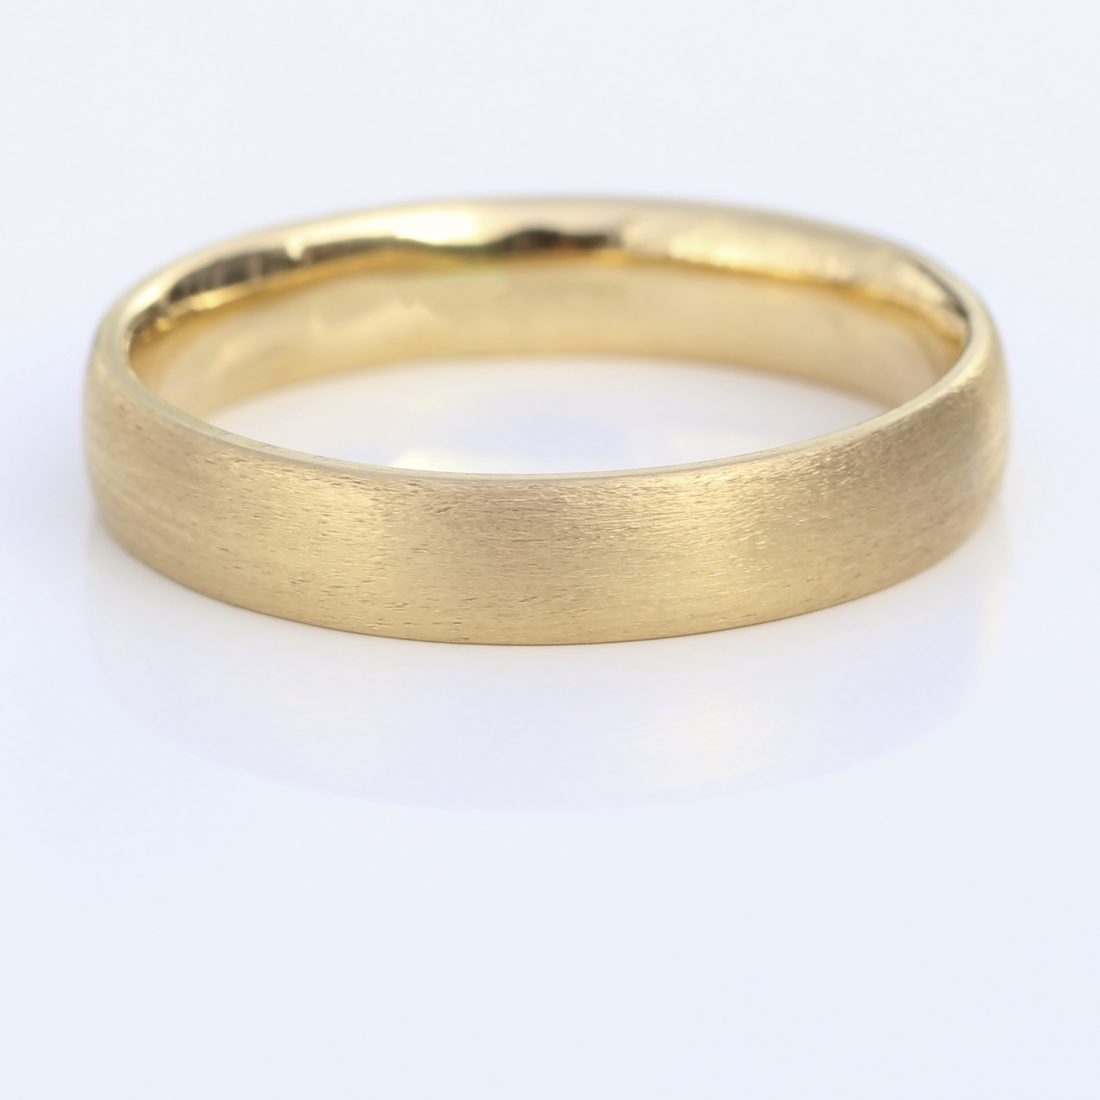 4mm comfort fit wedding ring yellow gold